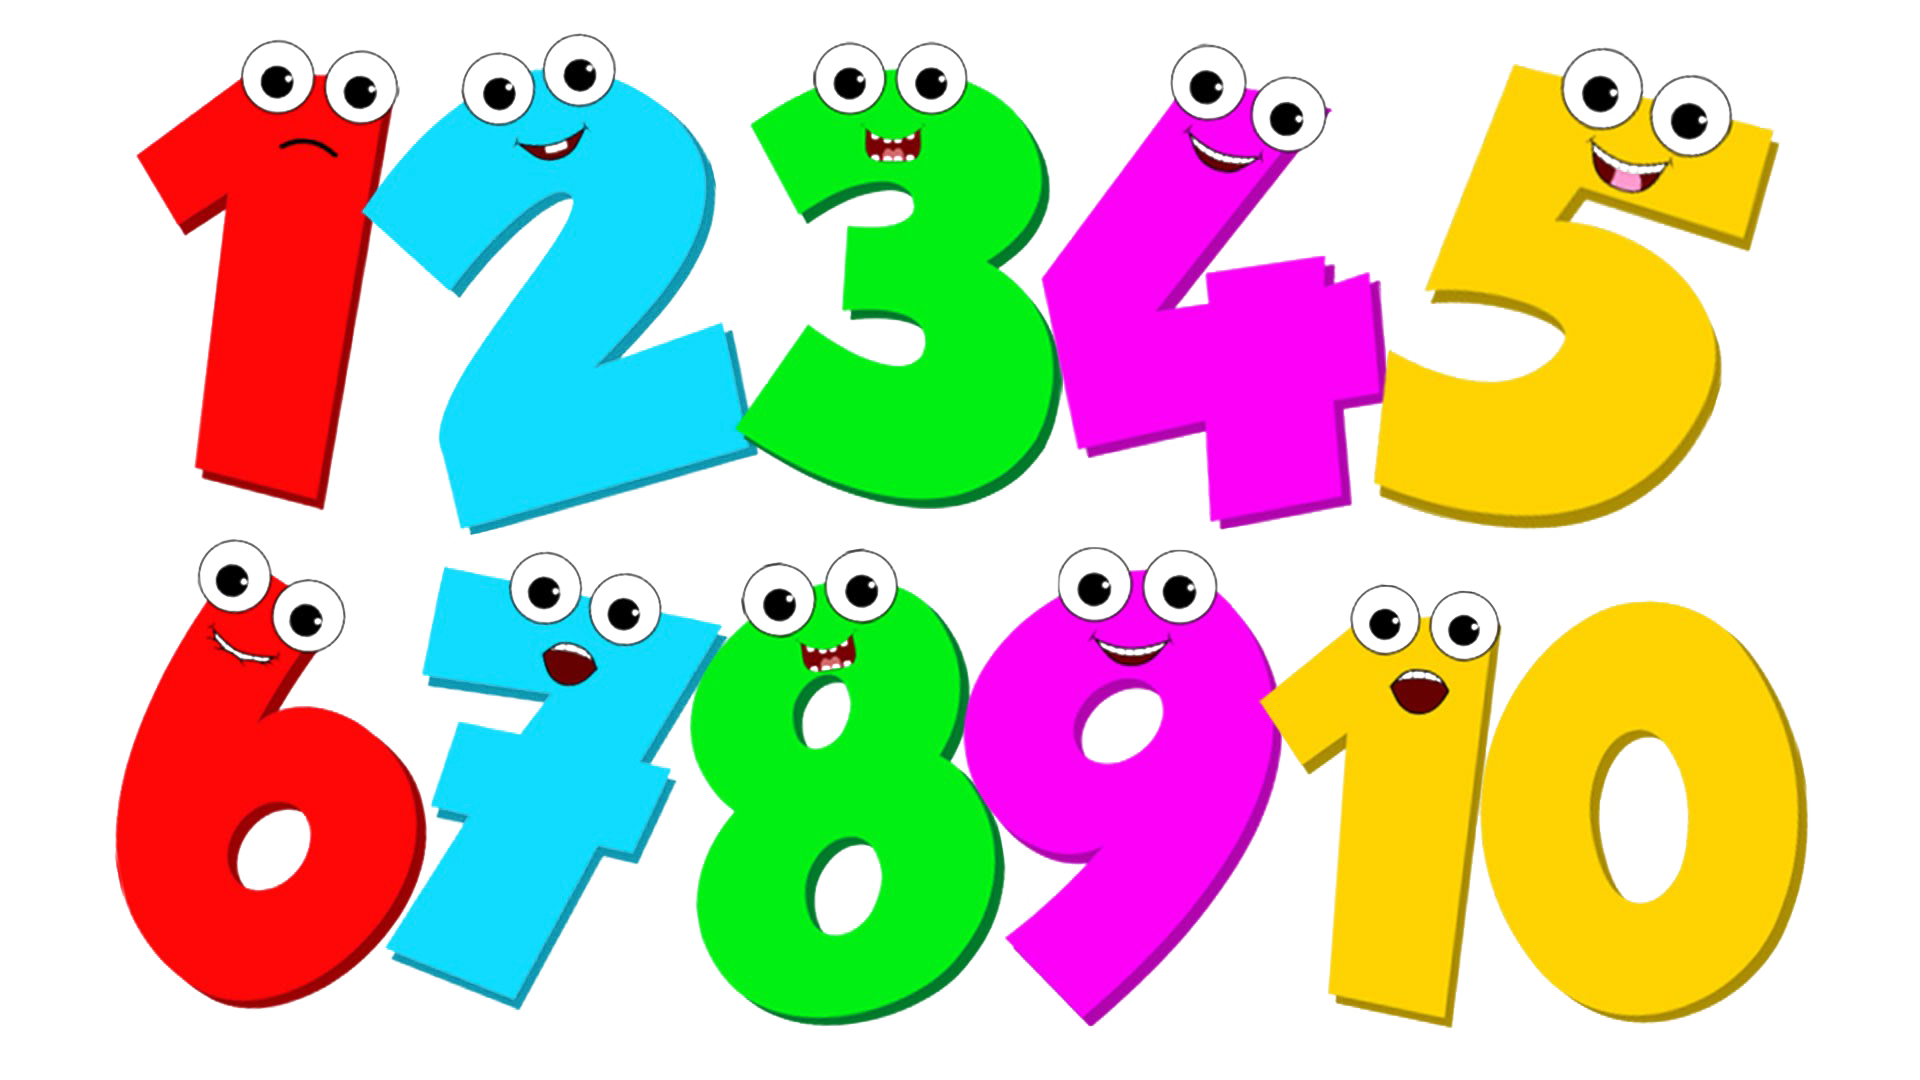 Download 1 To 10 Numbers Transparent Free PNG.